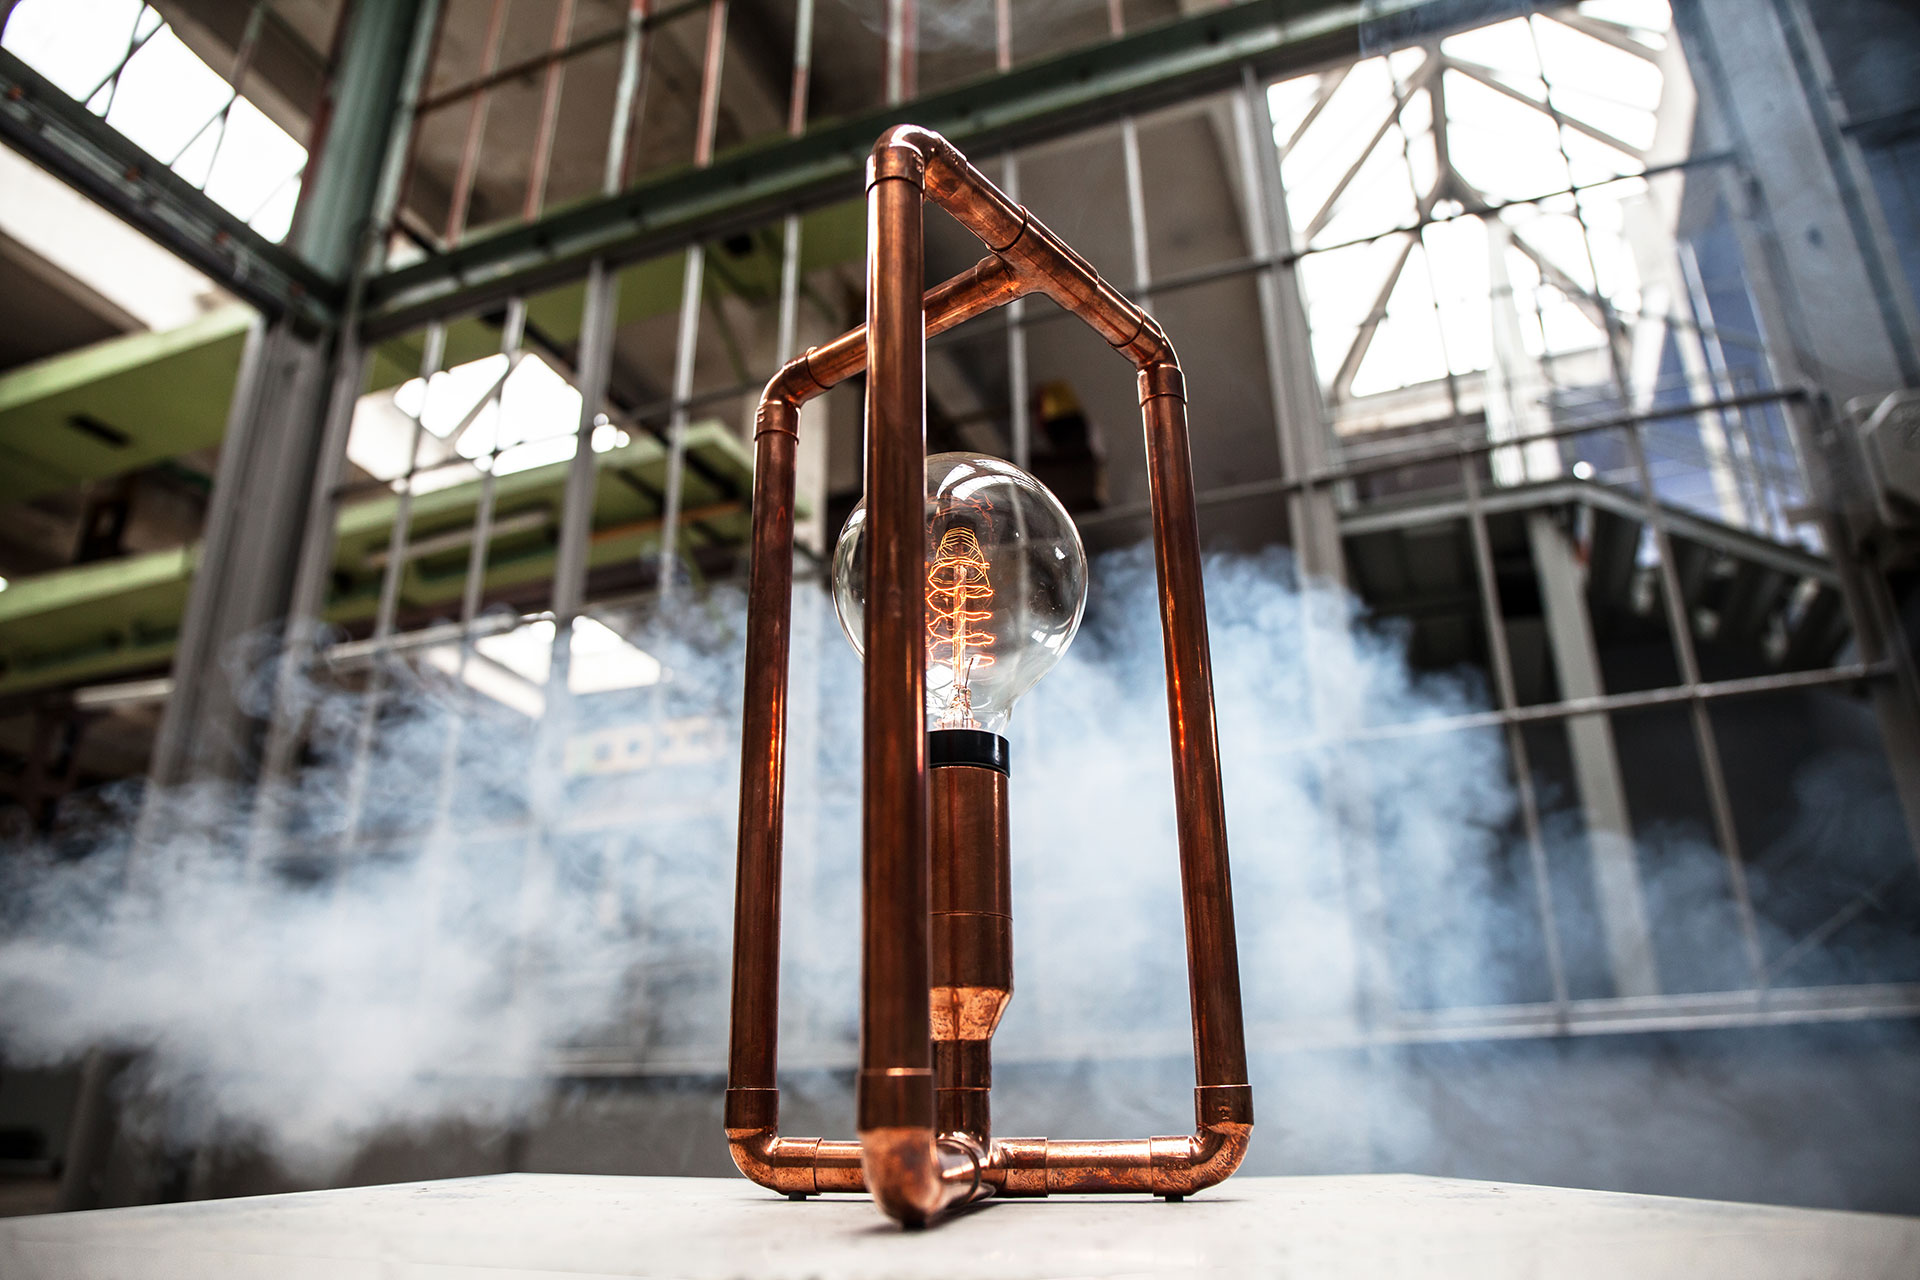 Copper pipes desk lamp with creative touch dimmer and vintage Edison bulb in industrial style interior